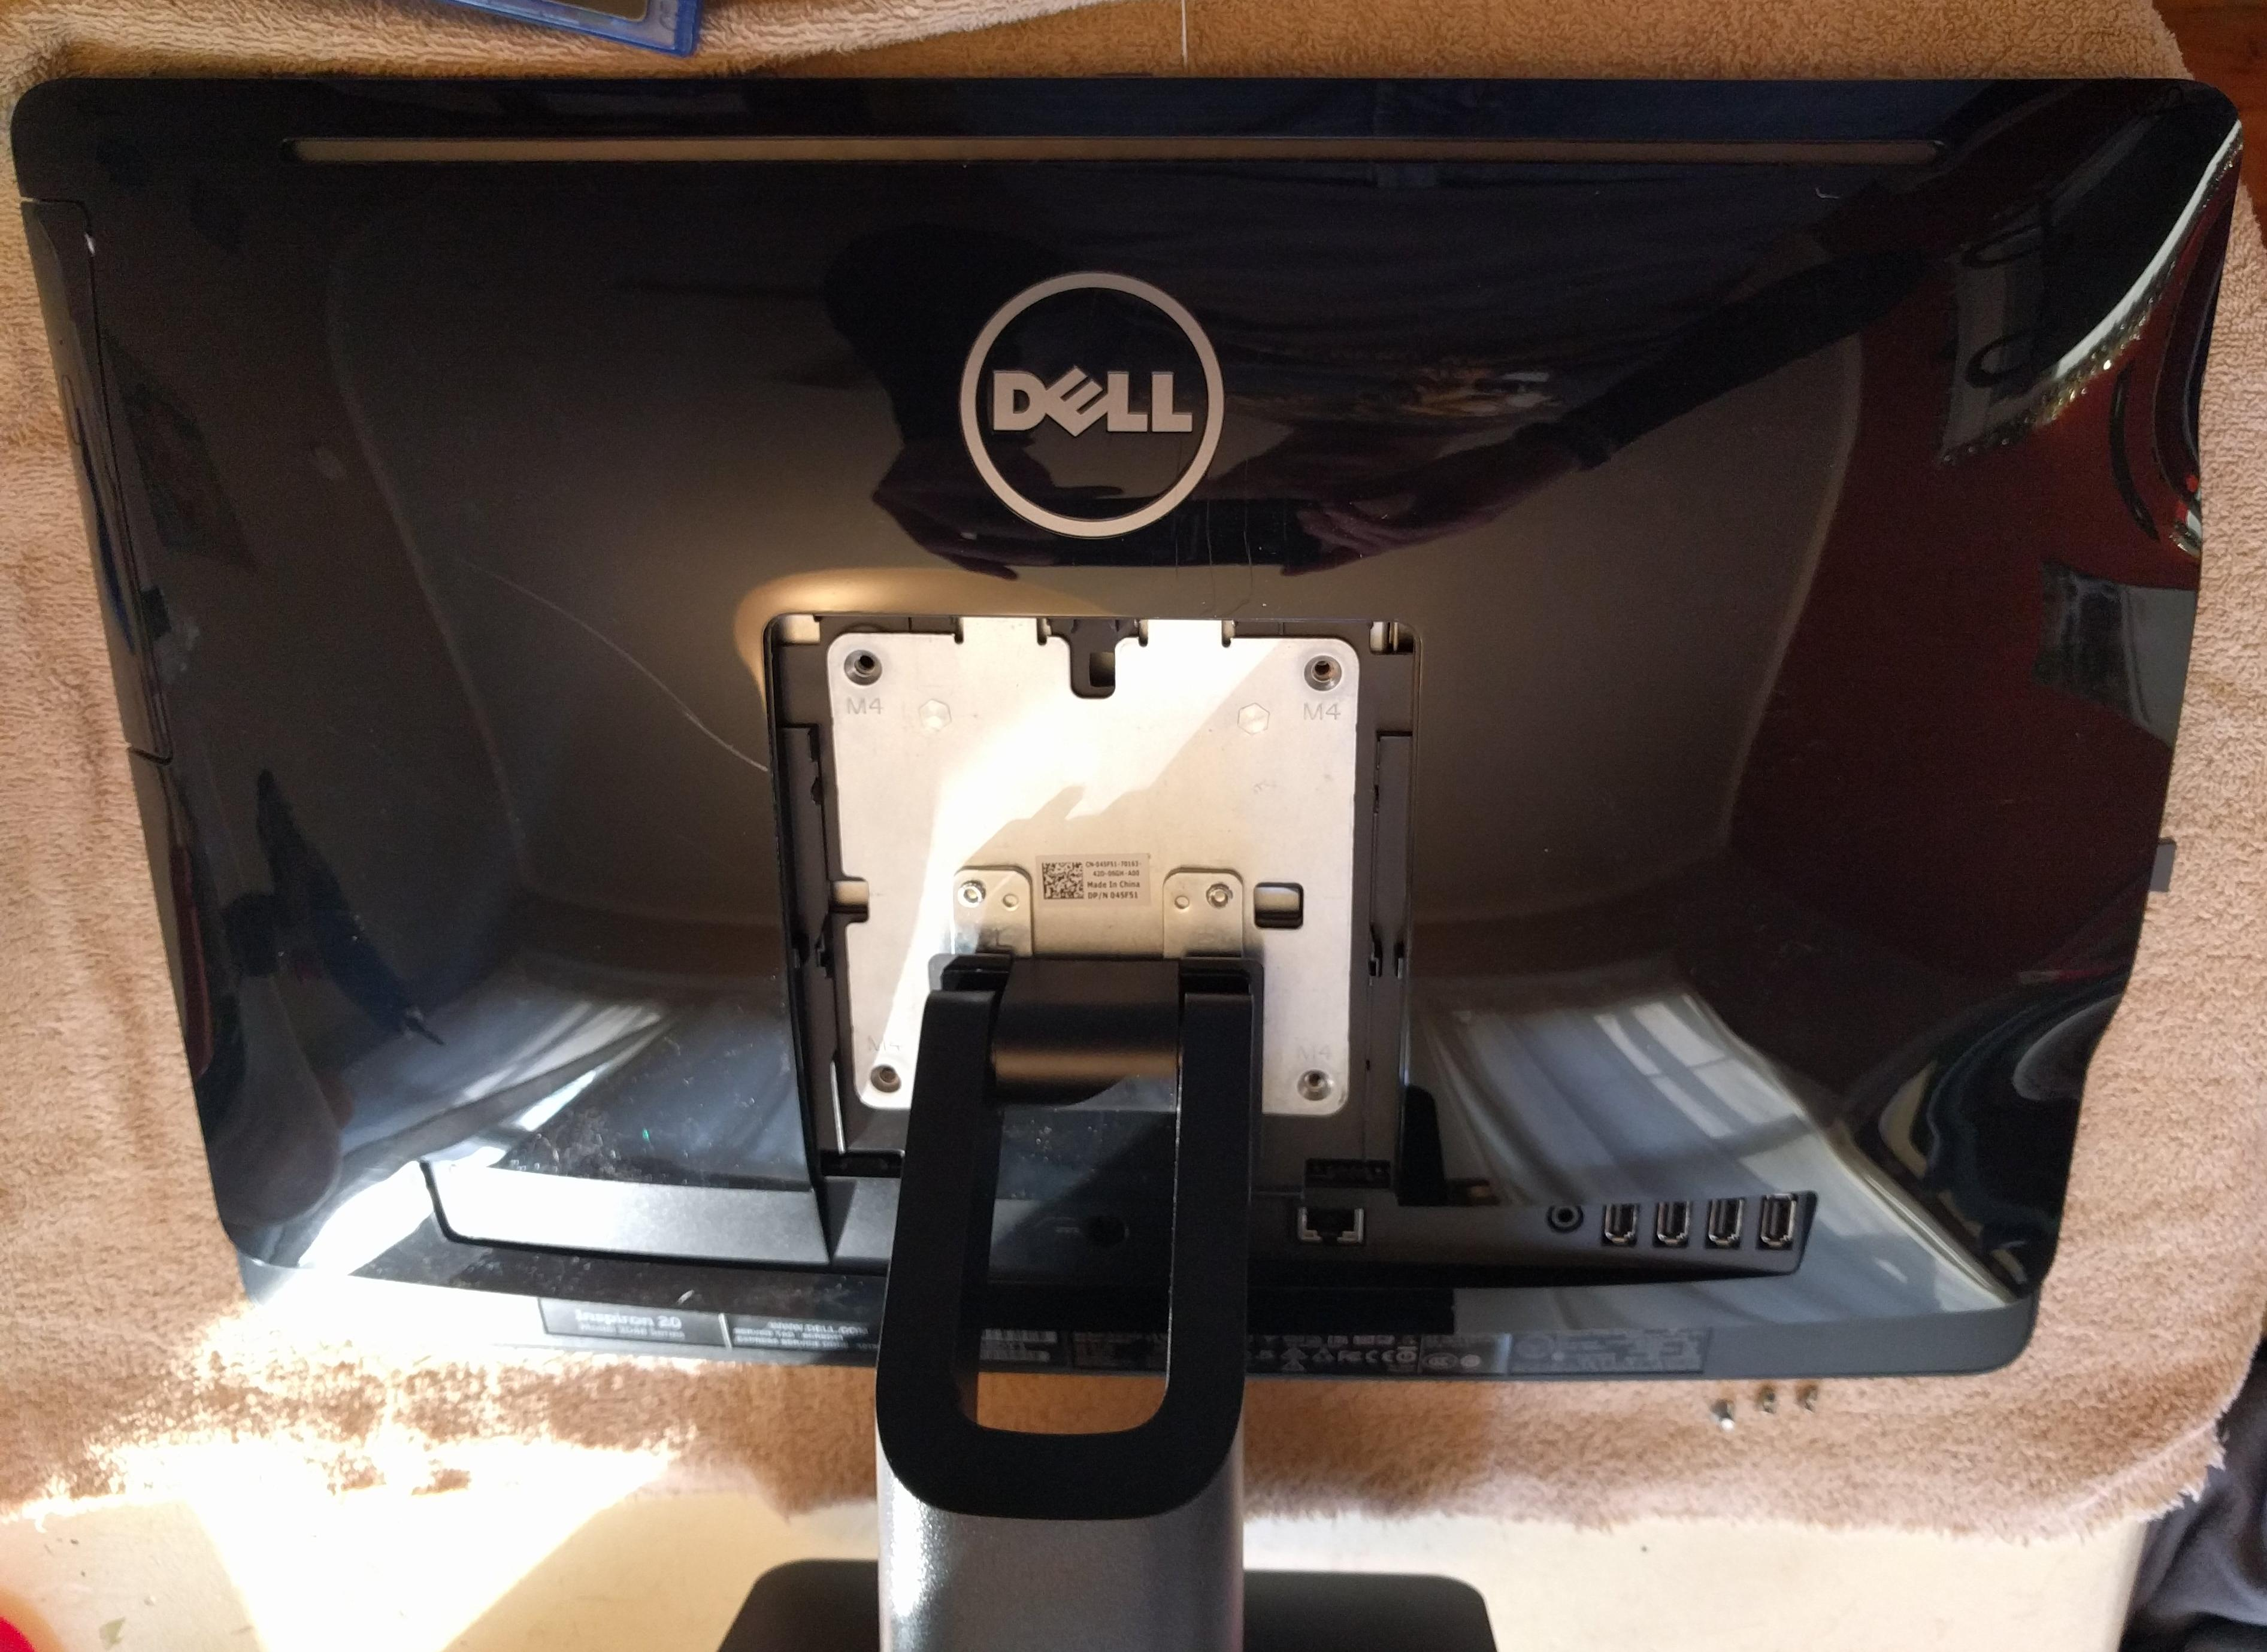 Dell Inspiron 20 3048-01-Back.jpg